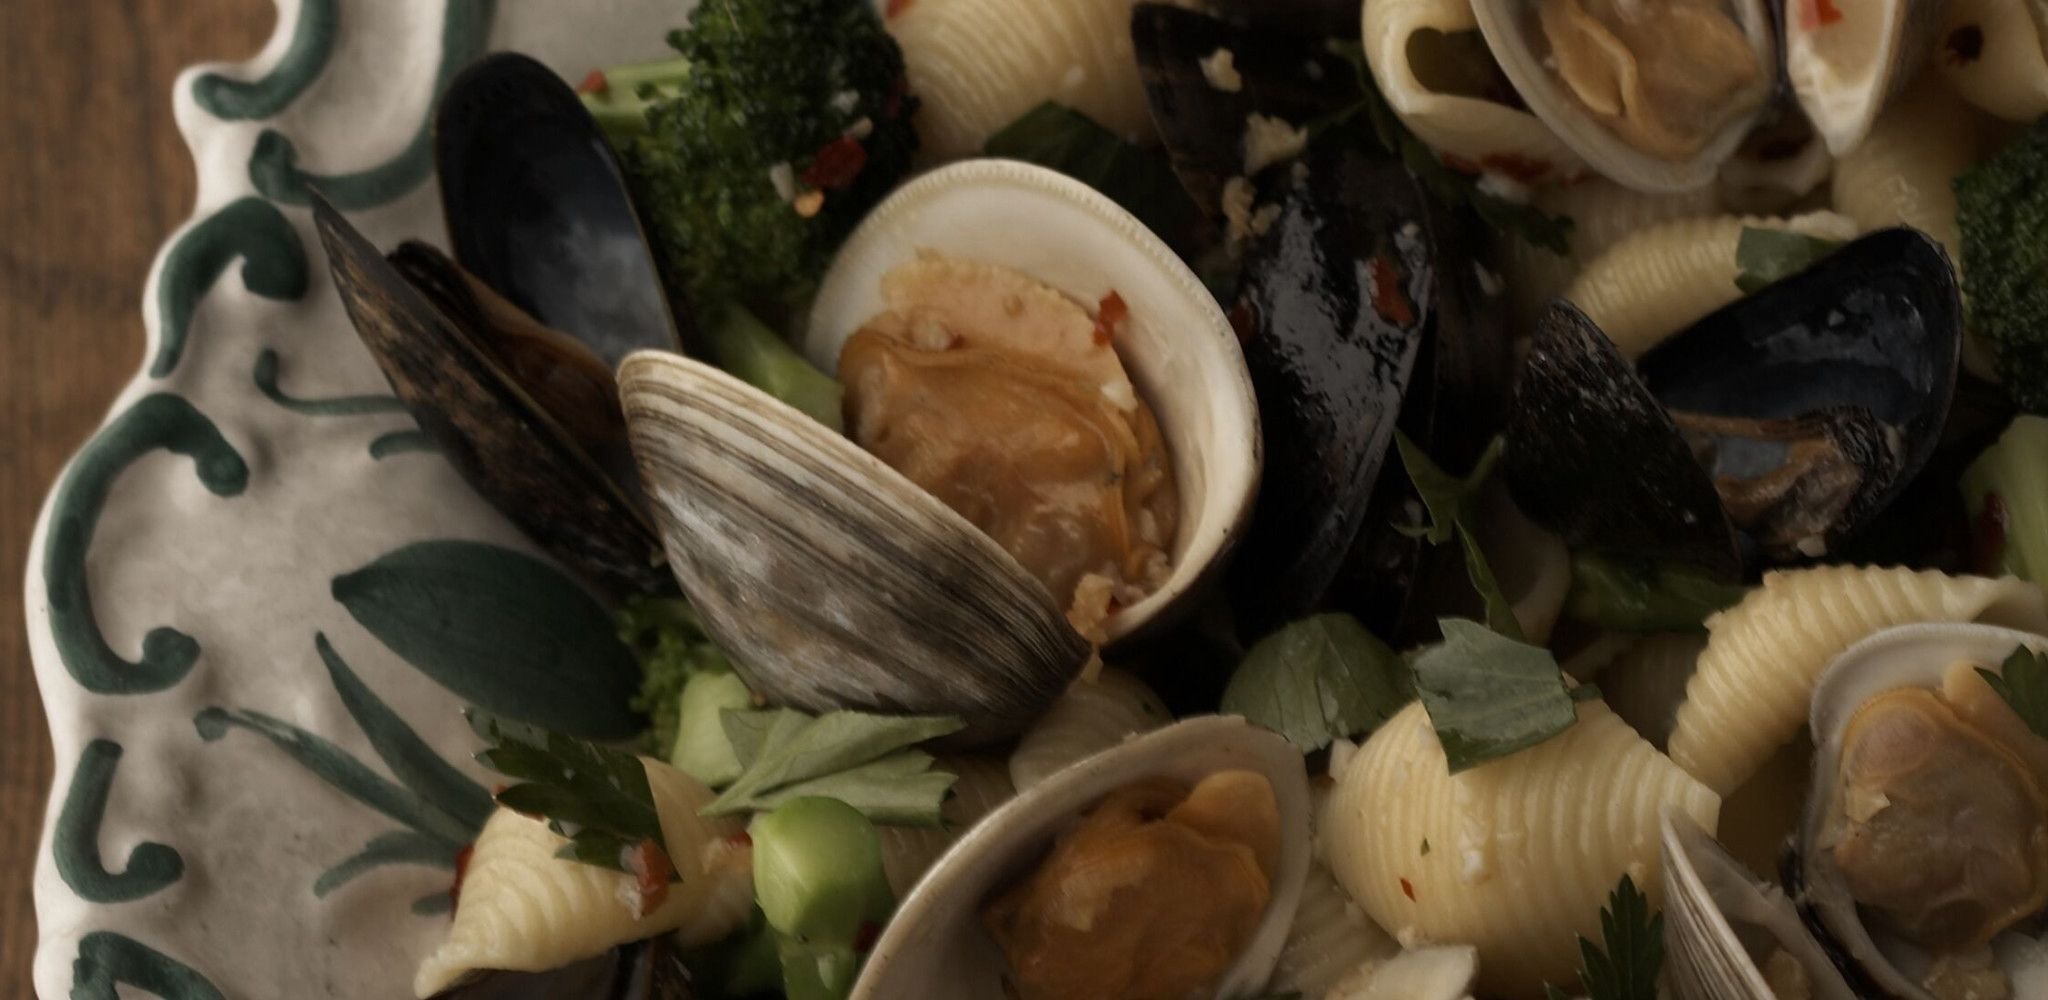 Conchiglie Aux Palourdes Et Moules In 2020 Mussels Clams Giada De Laurentiis Recipes